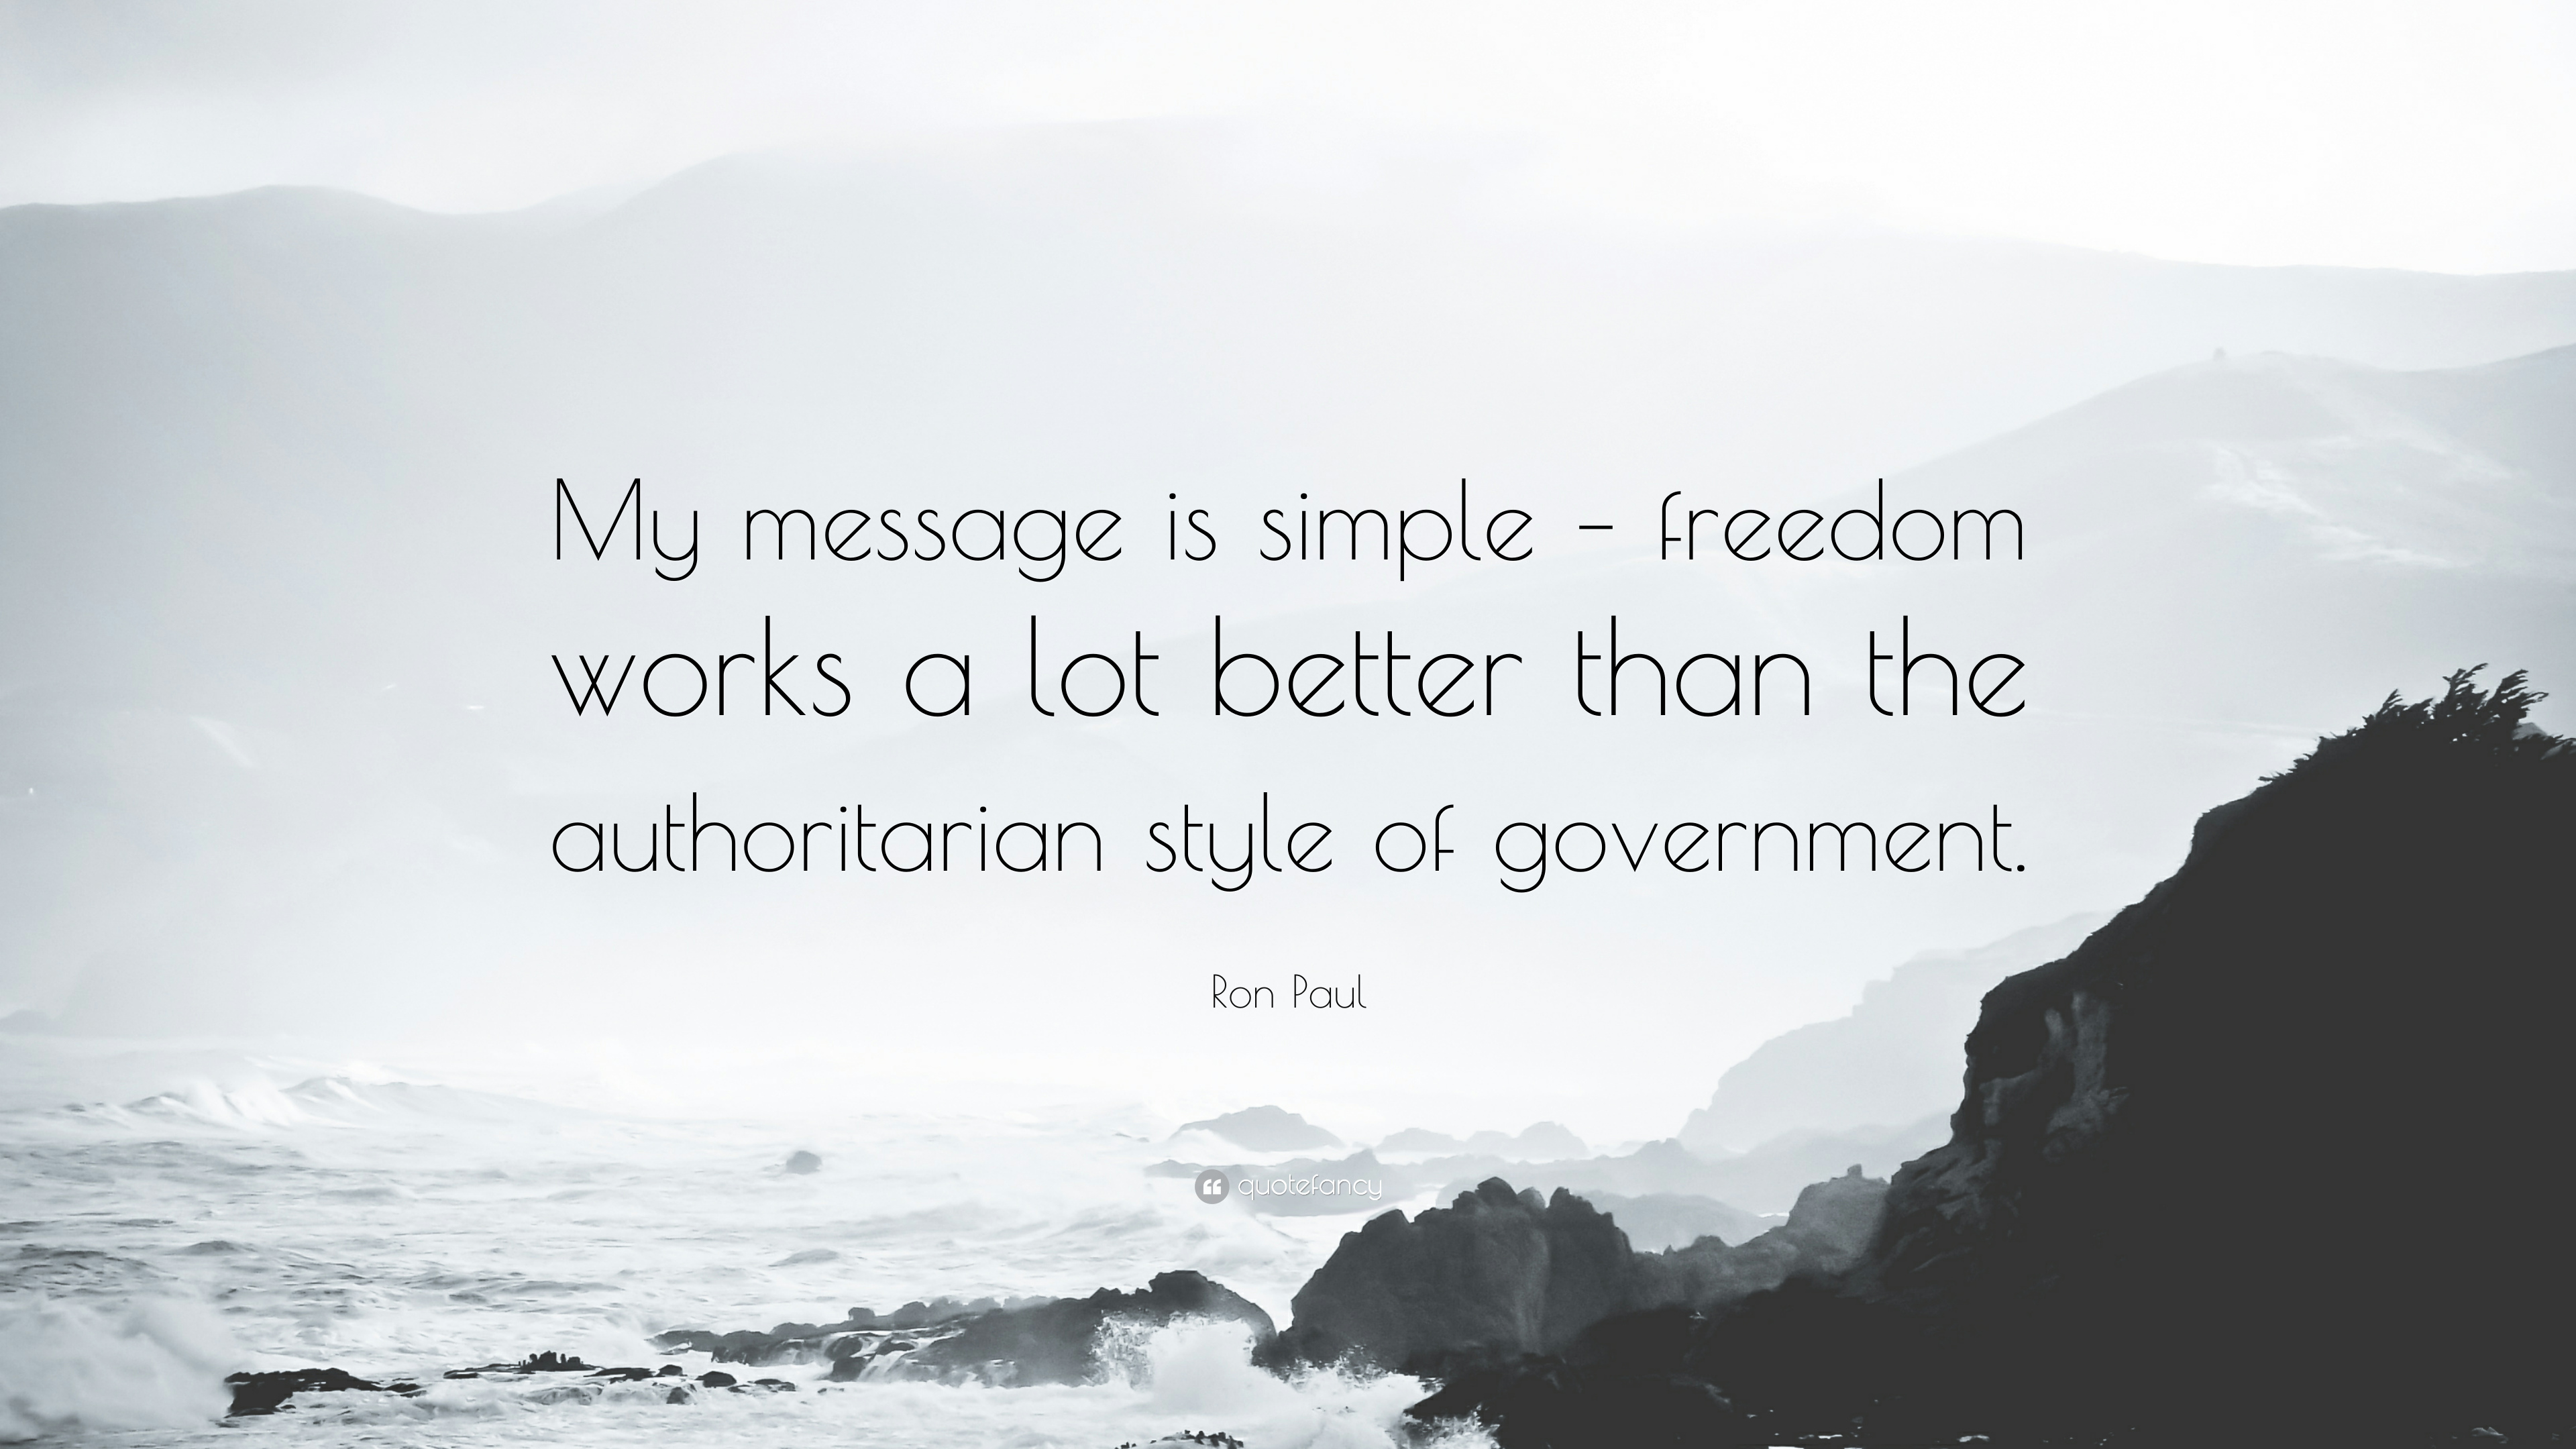 Exceptionnel Ron Paul Quote: U201cMy Message Is Simple U2013 Freedom Works A Lot Better Than